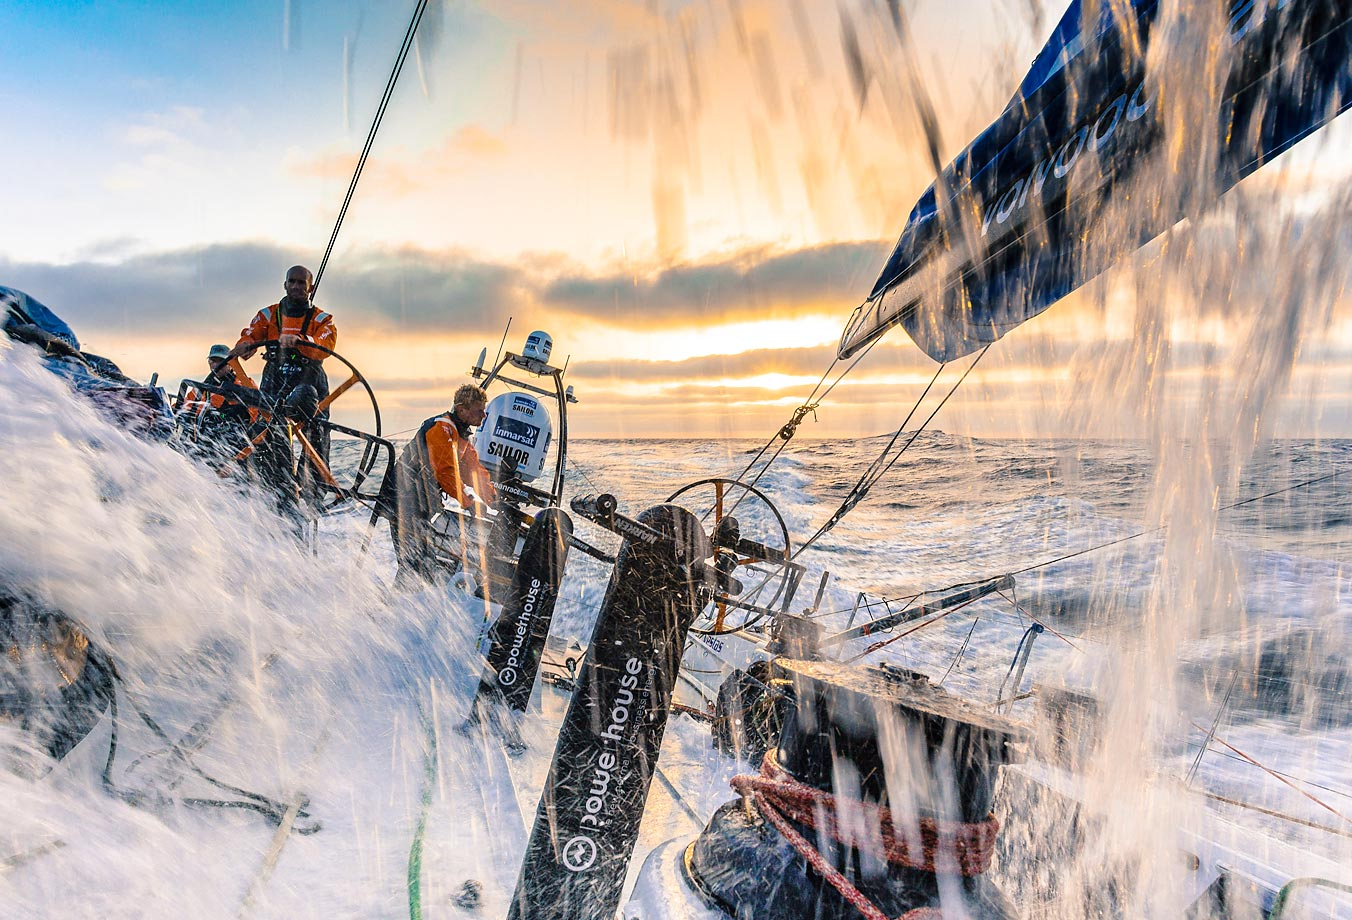 The Volvo Ocean Race 2014-15 is the 12th running of the ocean marathon.